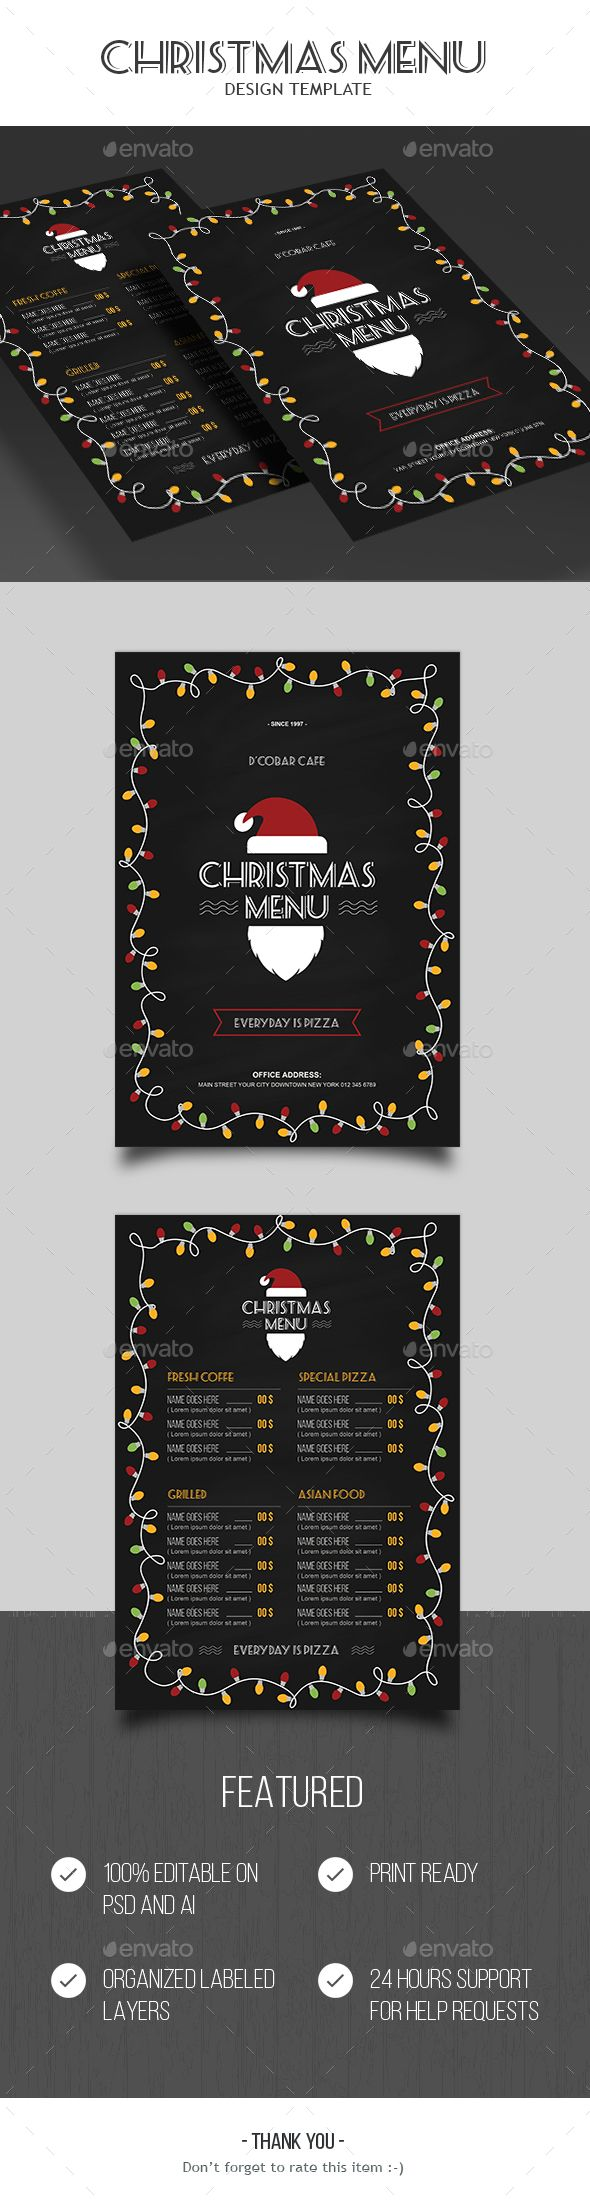 Christmas Food Menu Template PSD, AI Illustrator